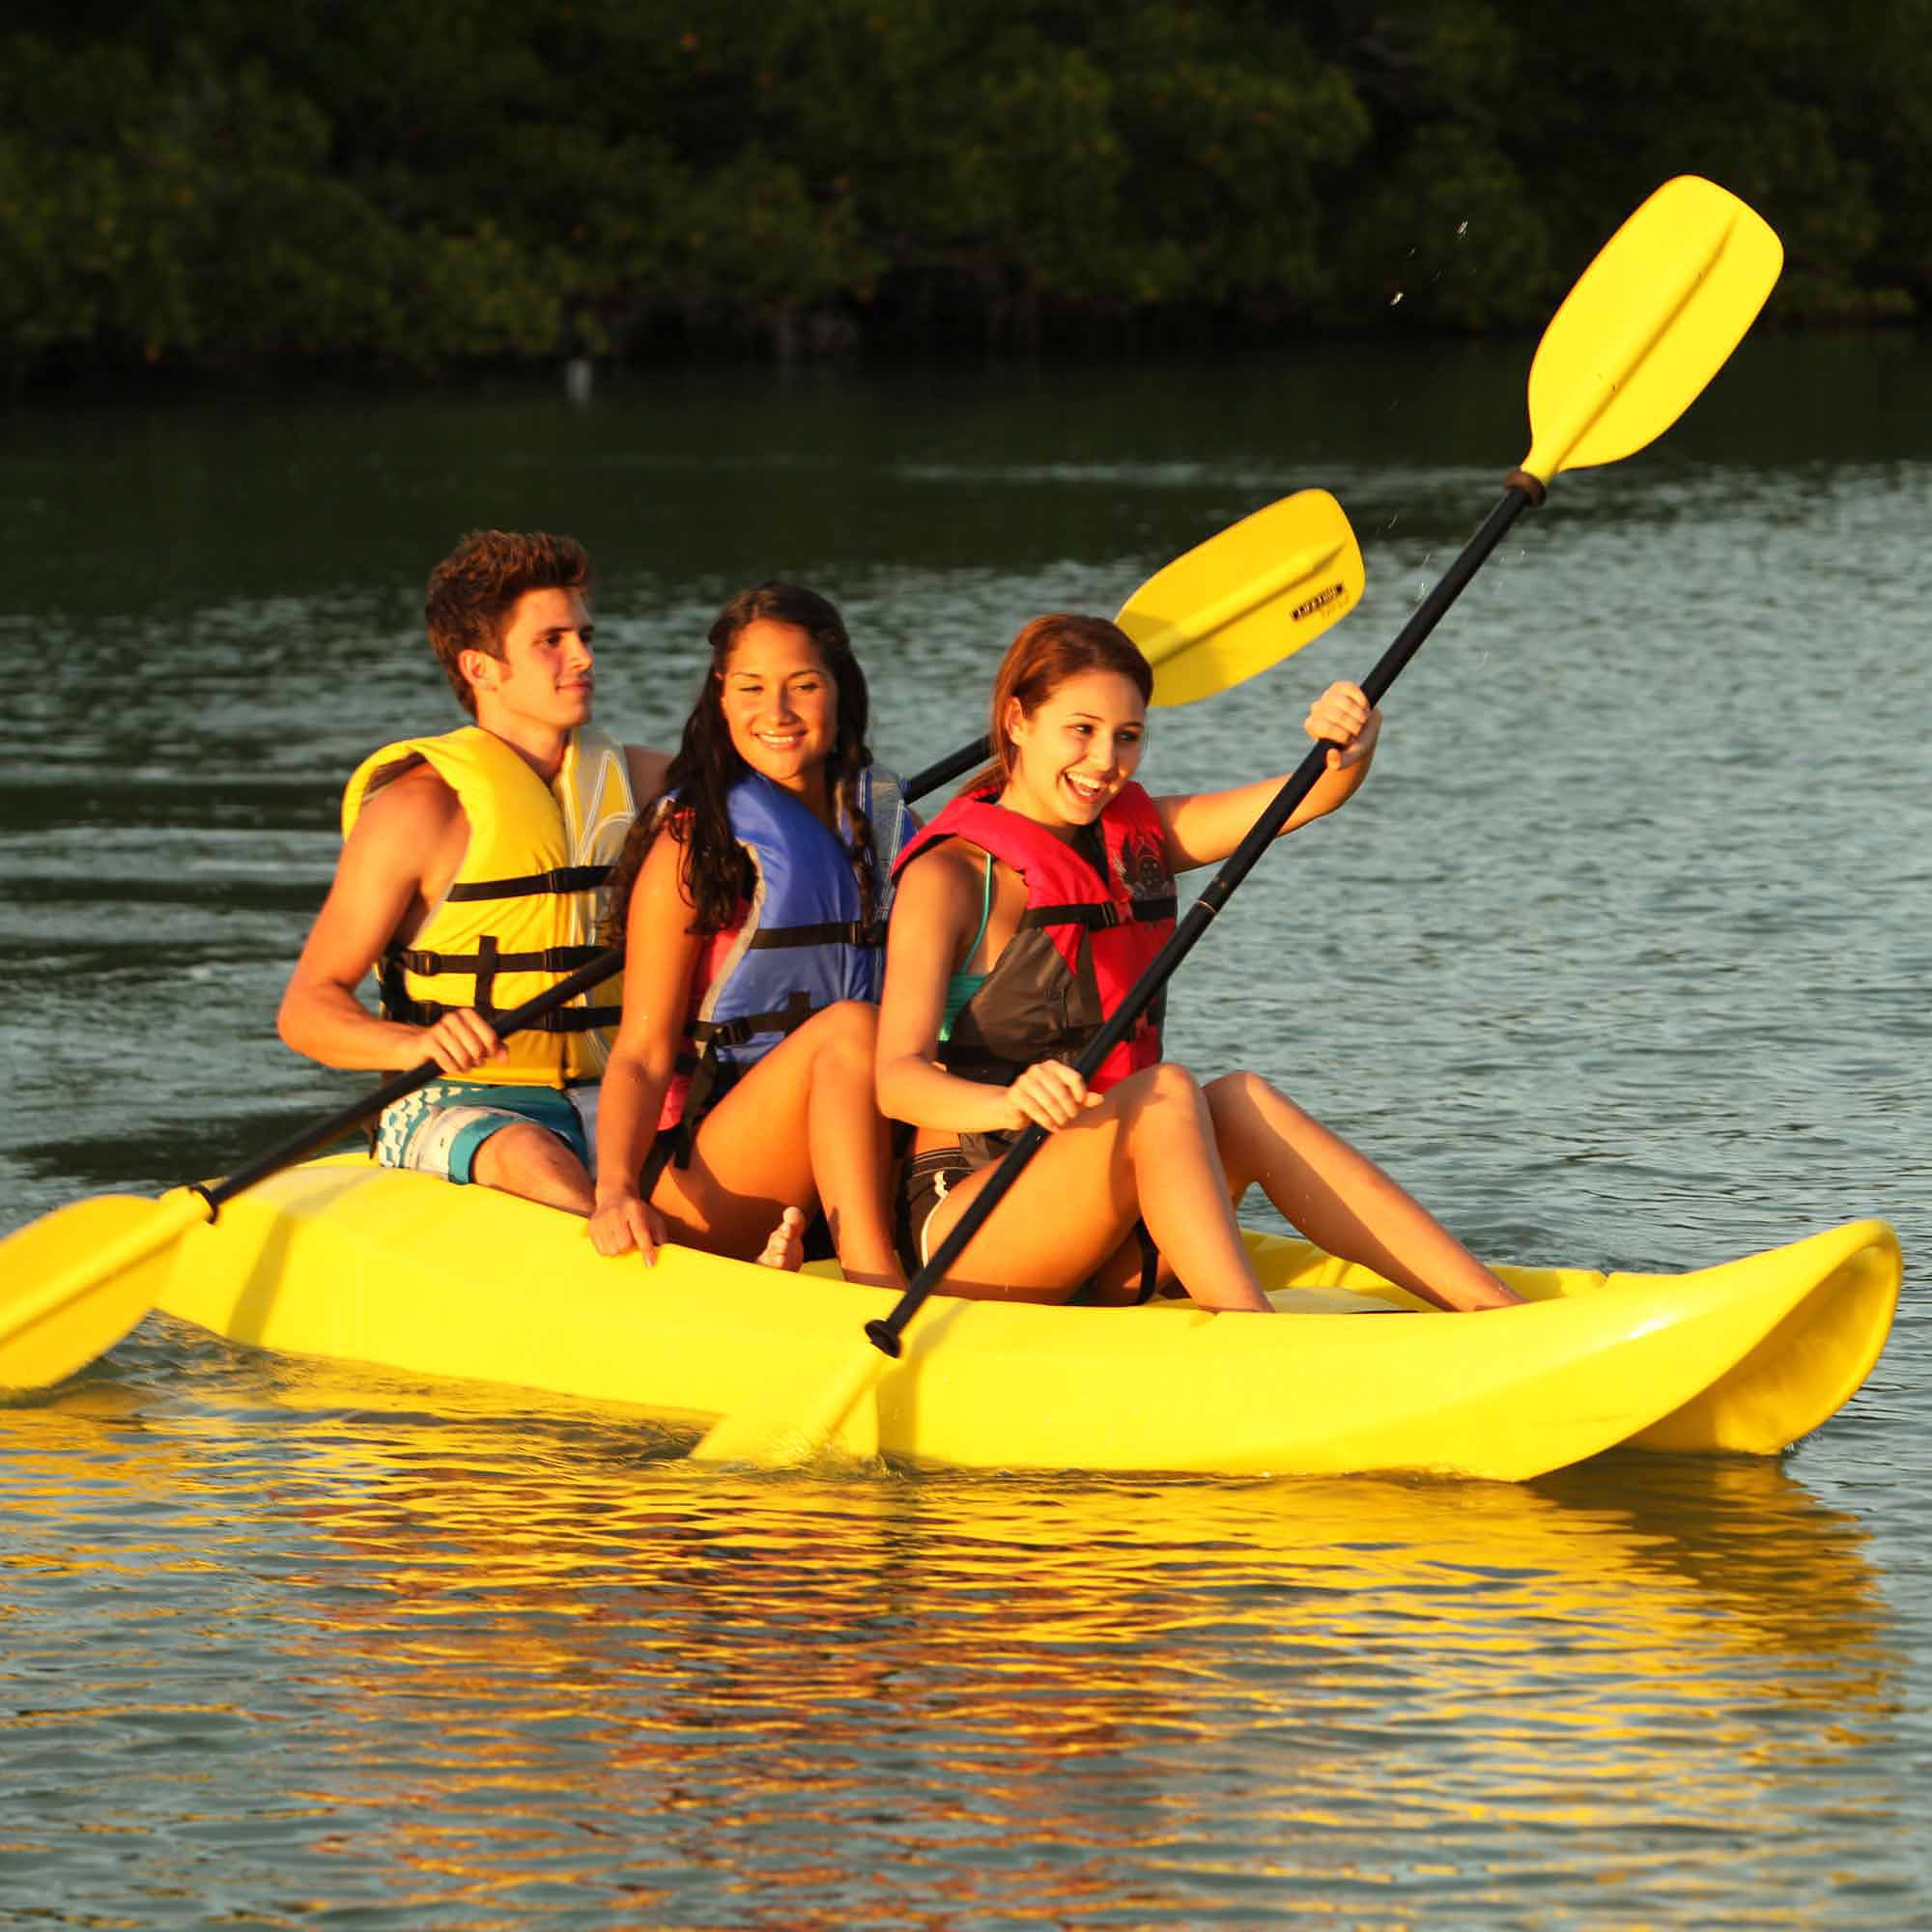 Lifetime, 10', 3-Man Manta Tandem Kayak, Yellow, with 2 Bonus Backrests